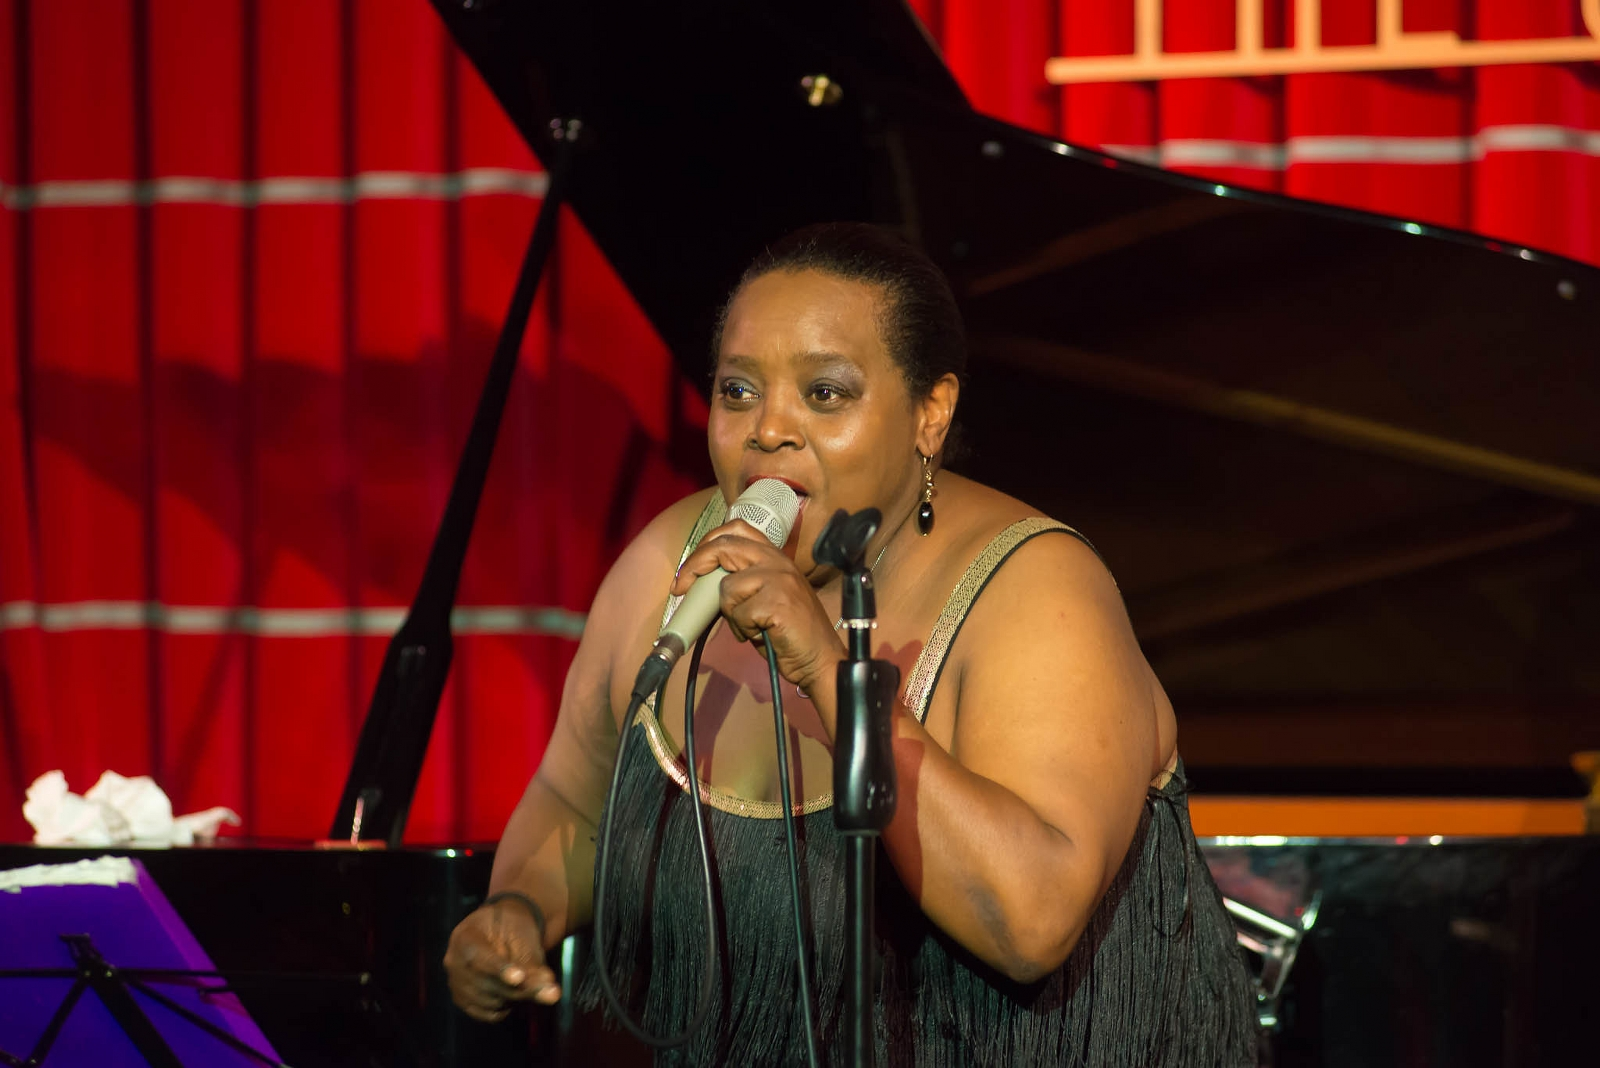 AYDENNE SIMONE & THE BIG MAMA TRIO'S 30TH ANNIVERSARY